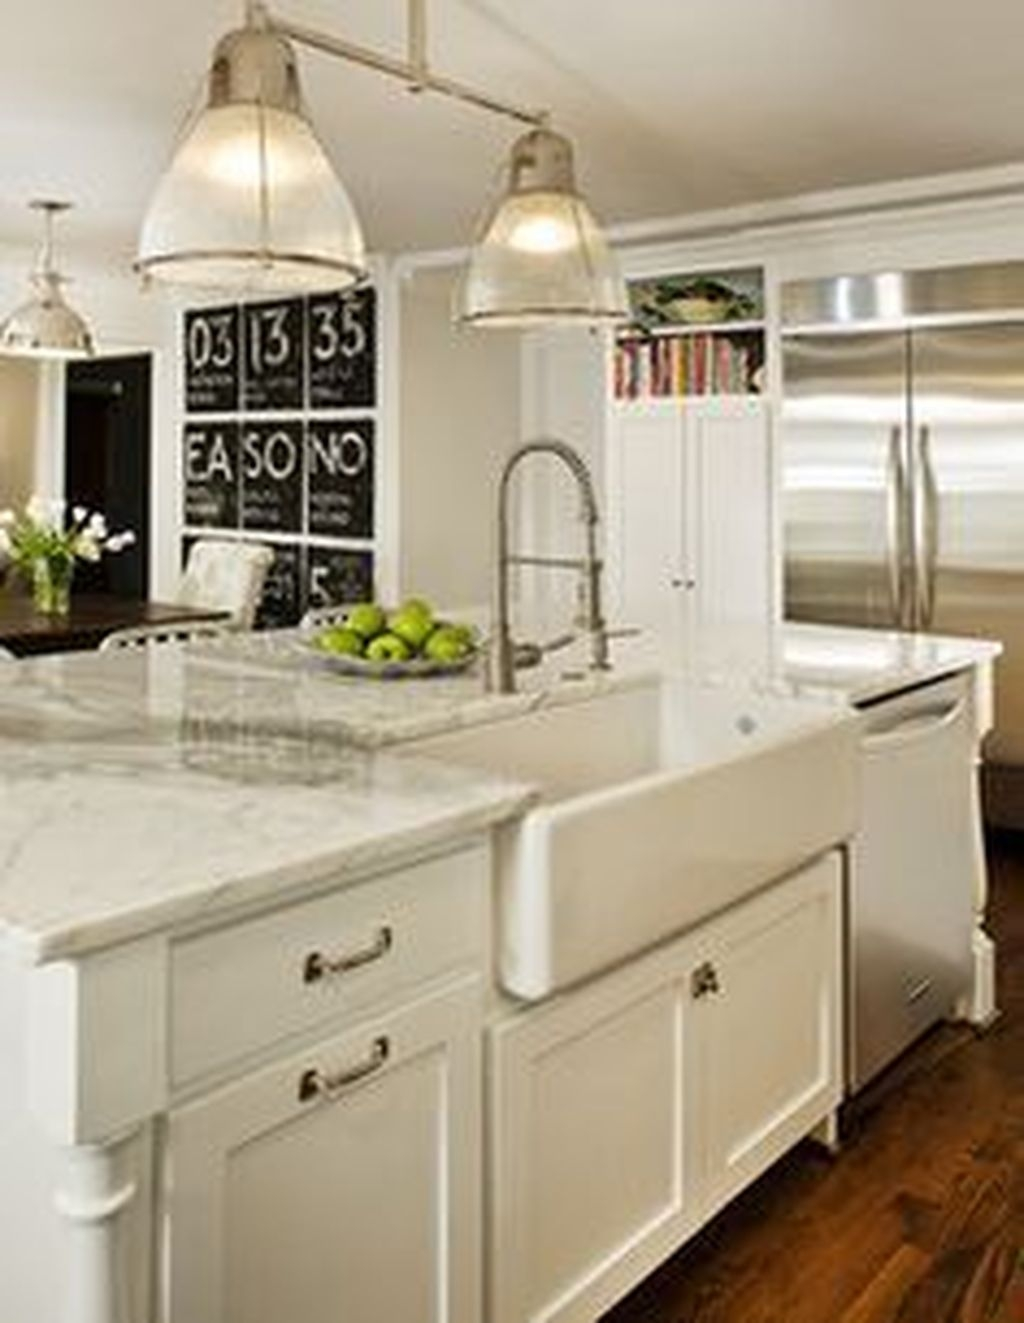 Outstanding Sink Ideas For Kitchen Home You Should Try01